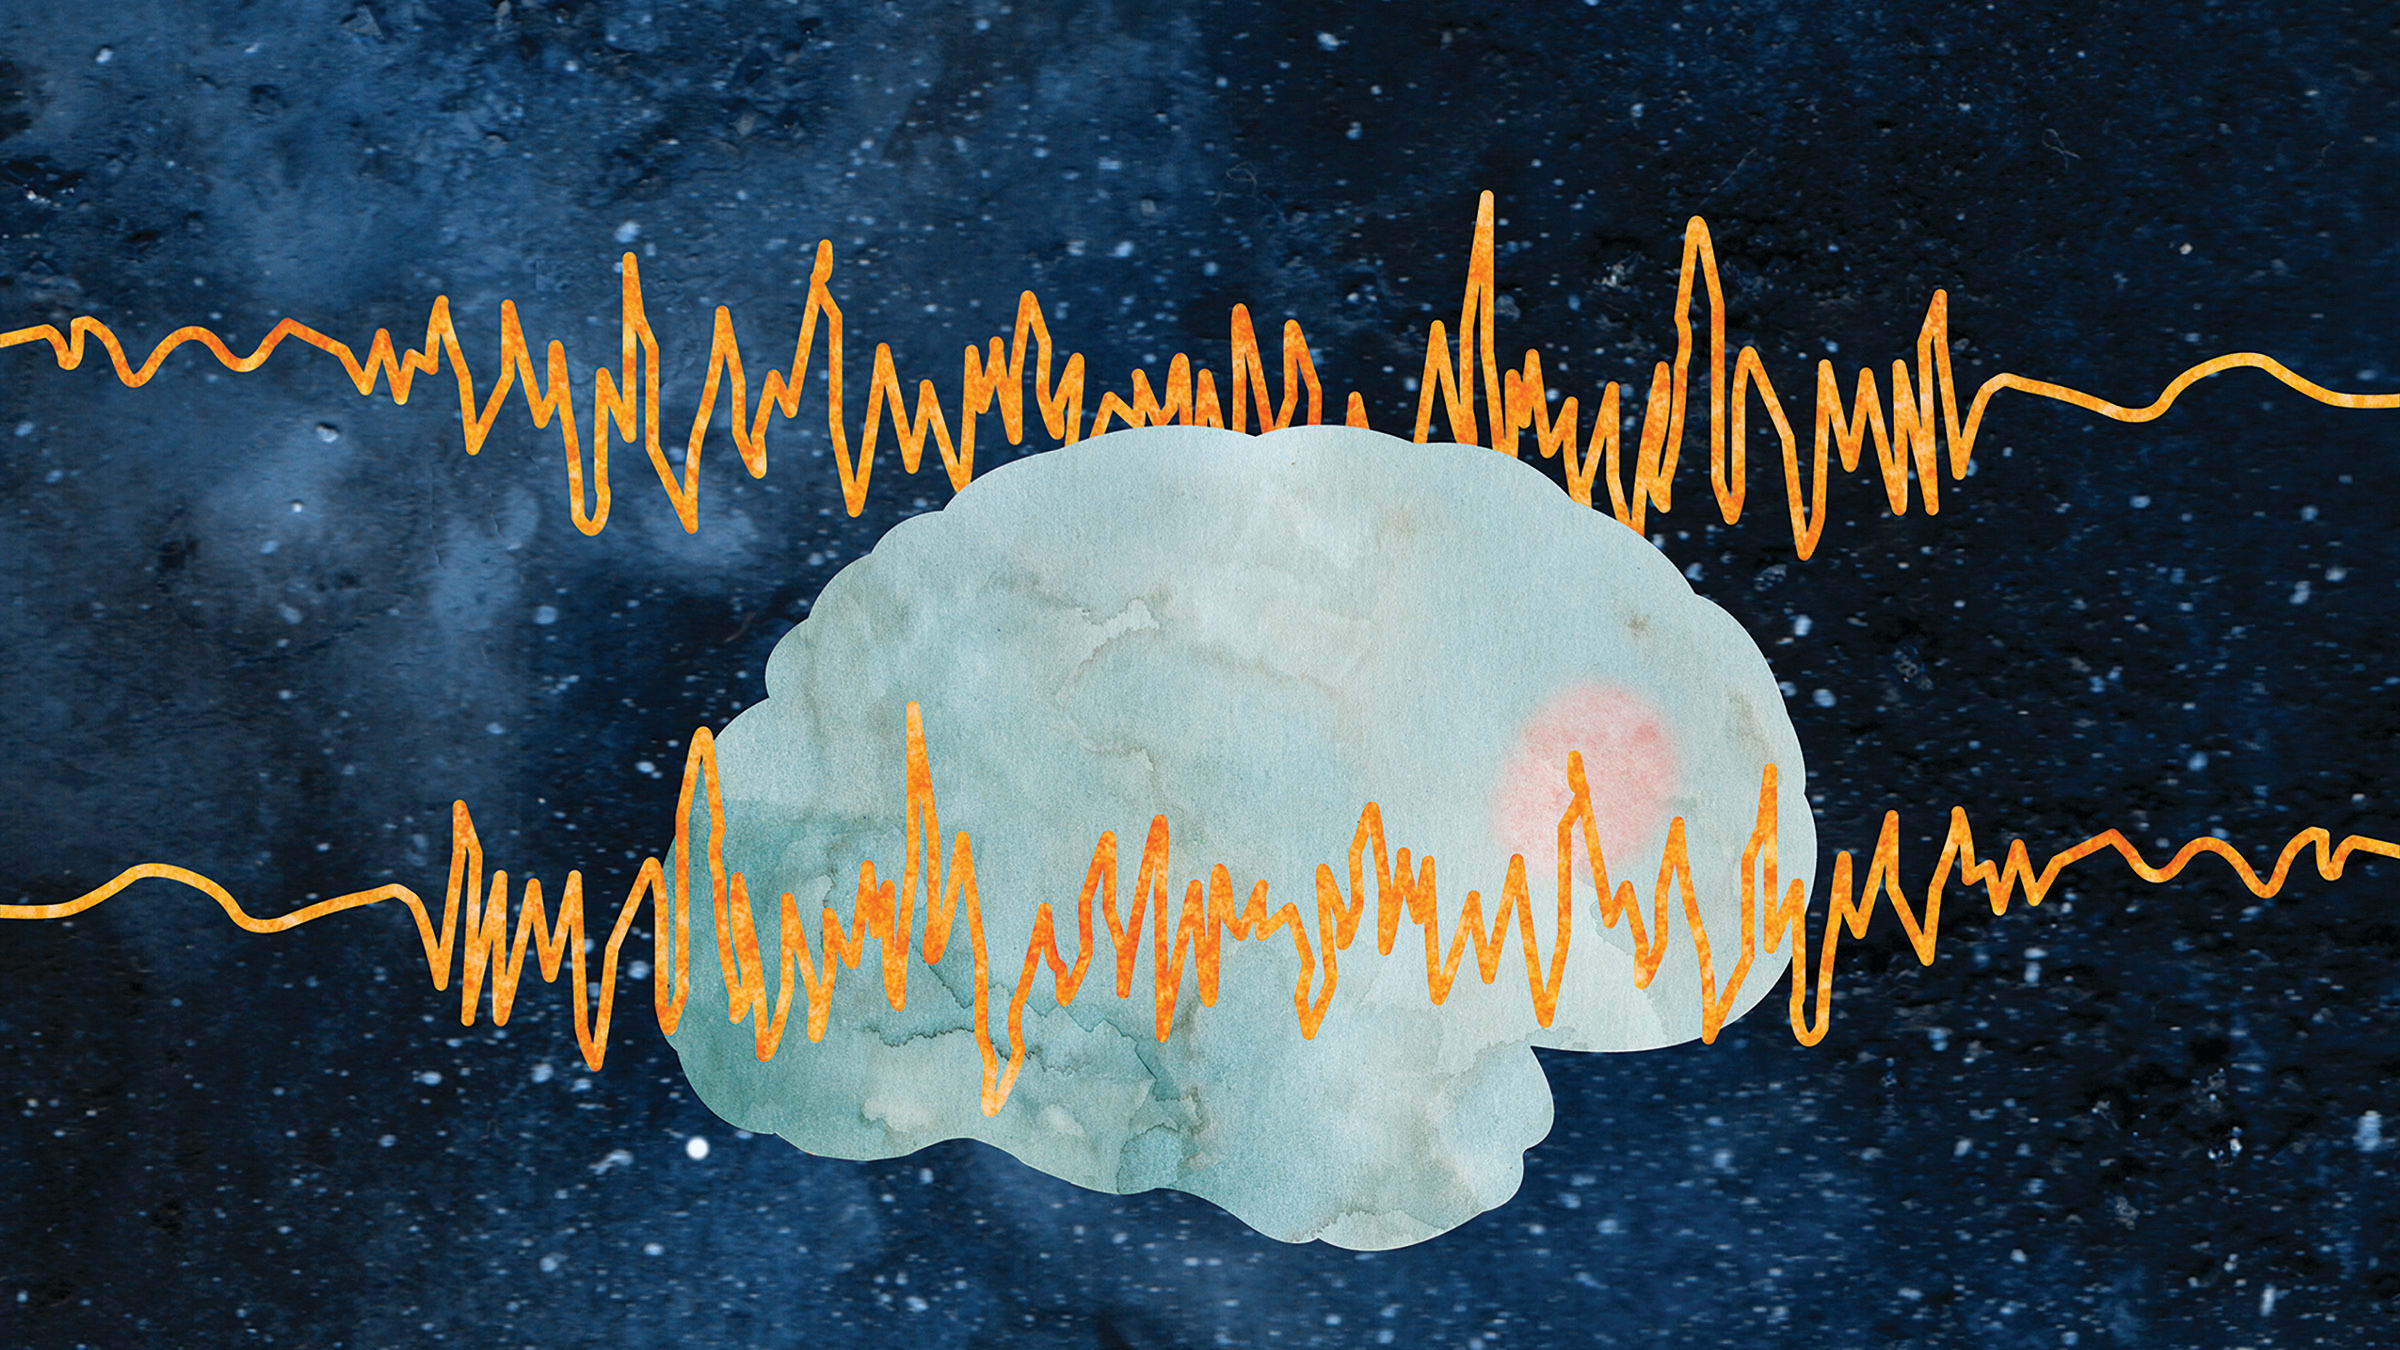 Illustration of a brain EEG, showing epilepsy